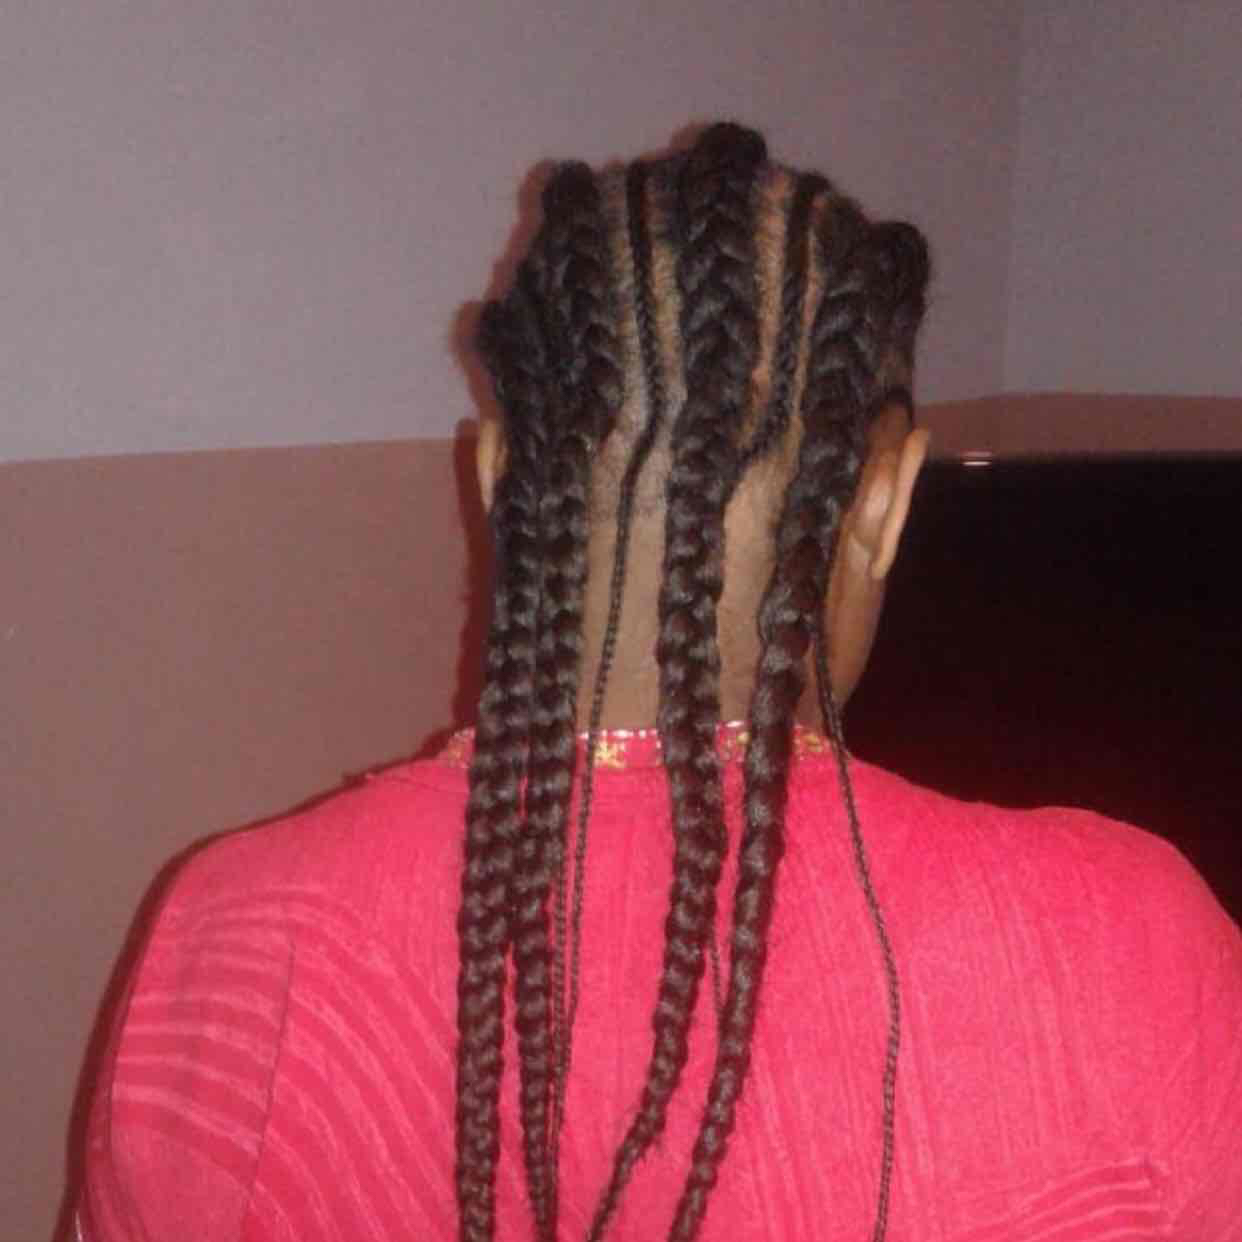 salon de coiffure afro tresse tresses box braids crochet braids vanilles tissages paris 75 77 78 91 92 93 94 95 YLZTHYYG